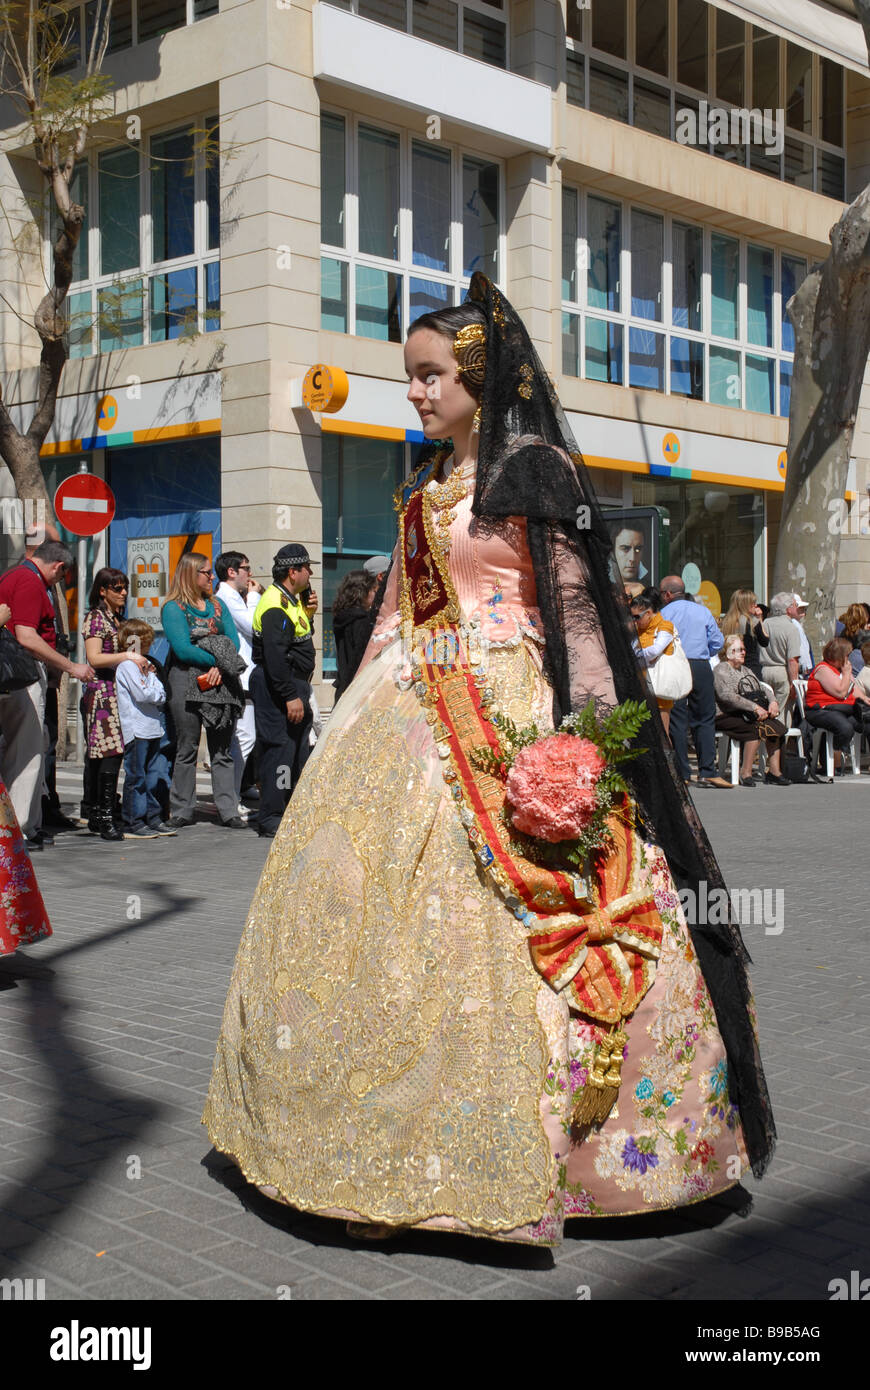 Fallera in national costume at Las Fallas Fiesta, Dia de San Jose Stock Photo...